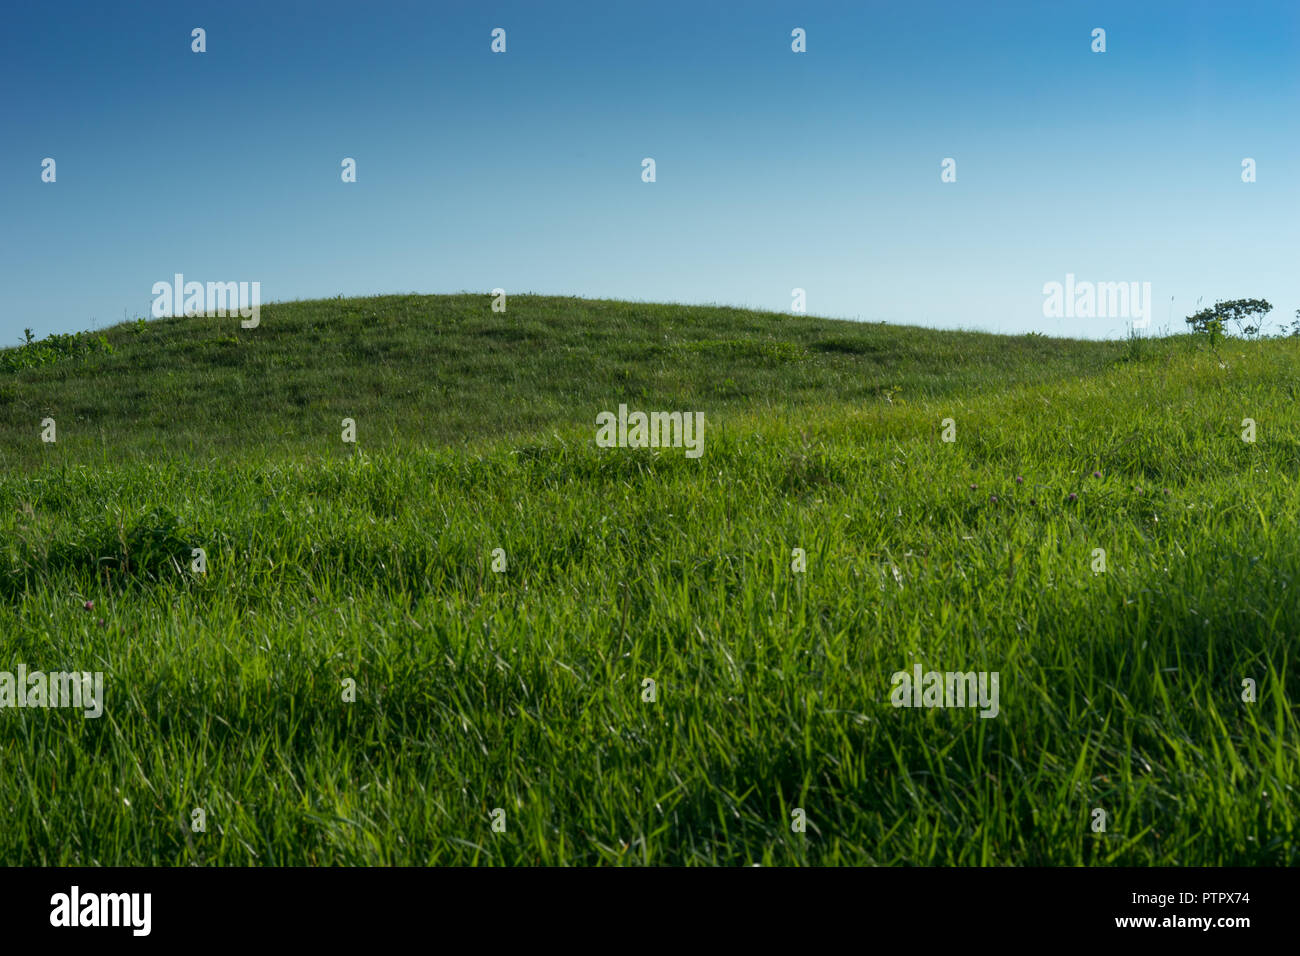 hill covered with unshaved green grass against a blue sky without clouds. - Stock Image